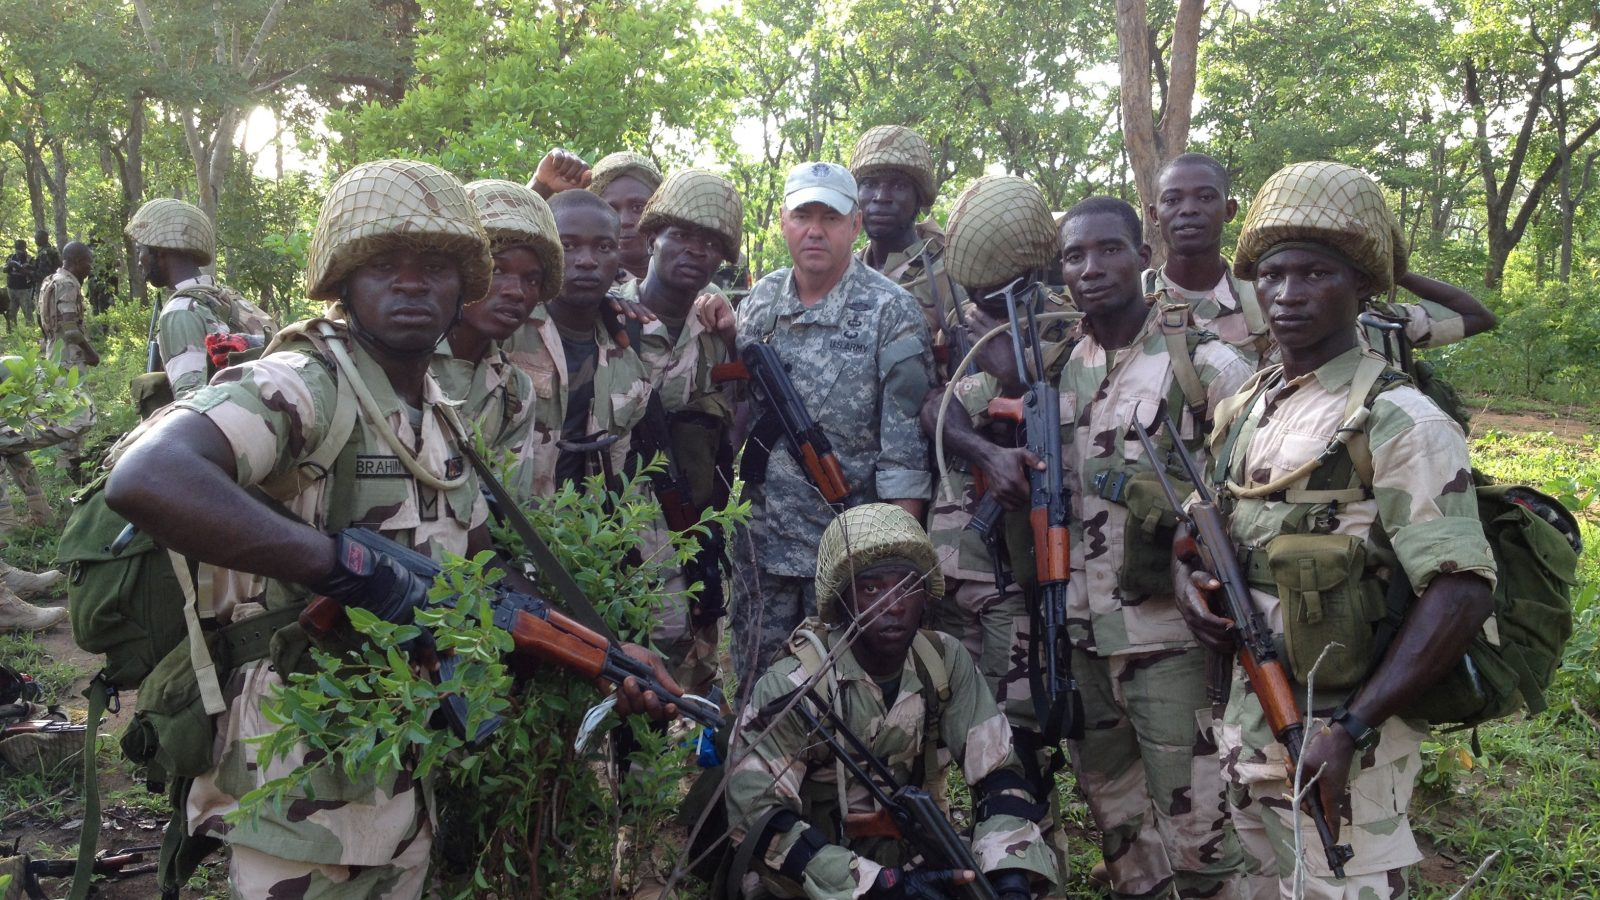 A California National Guard Special Forces soldier poses with Nigerian soldiers in 2014 during a training mission in Nigeria.